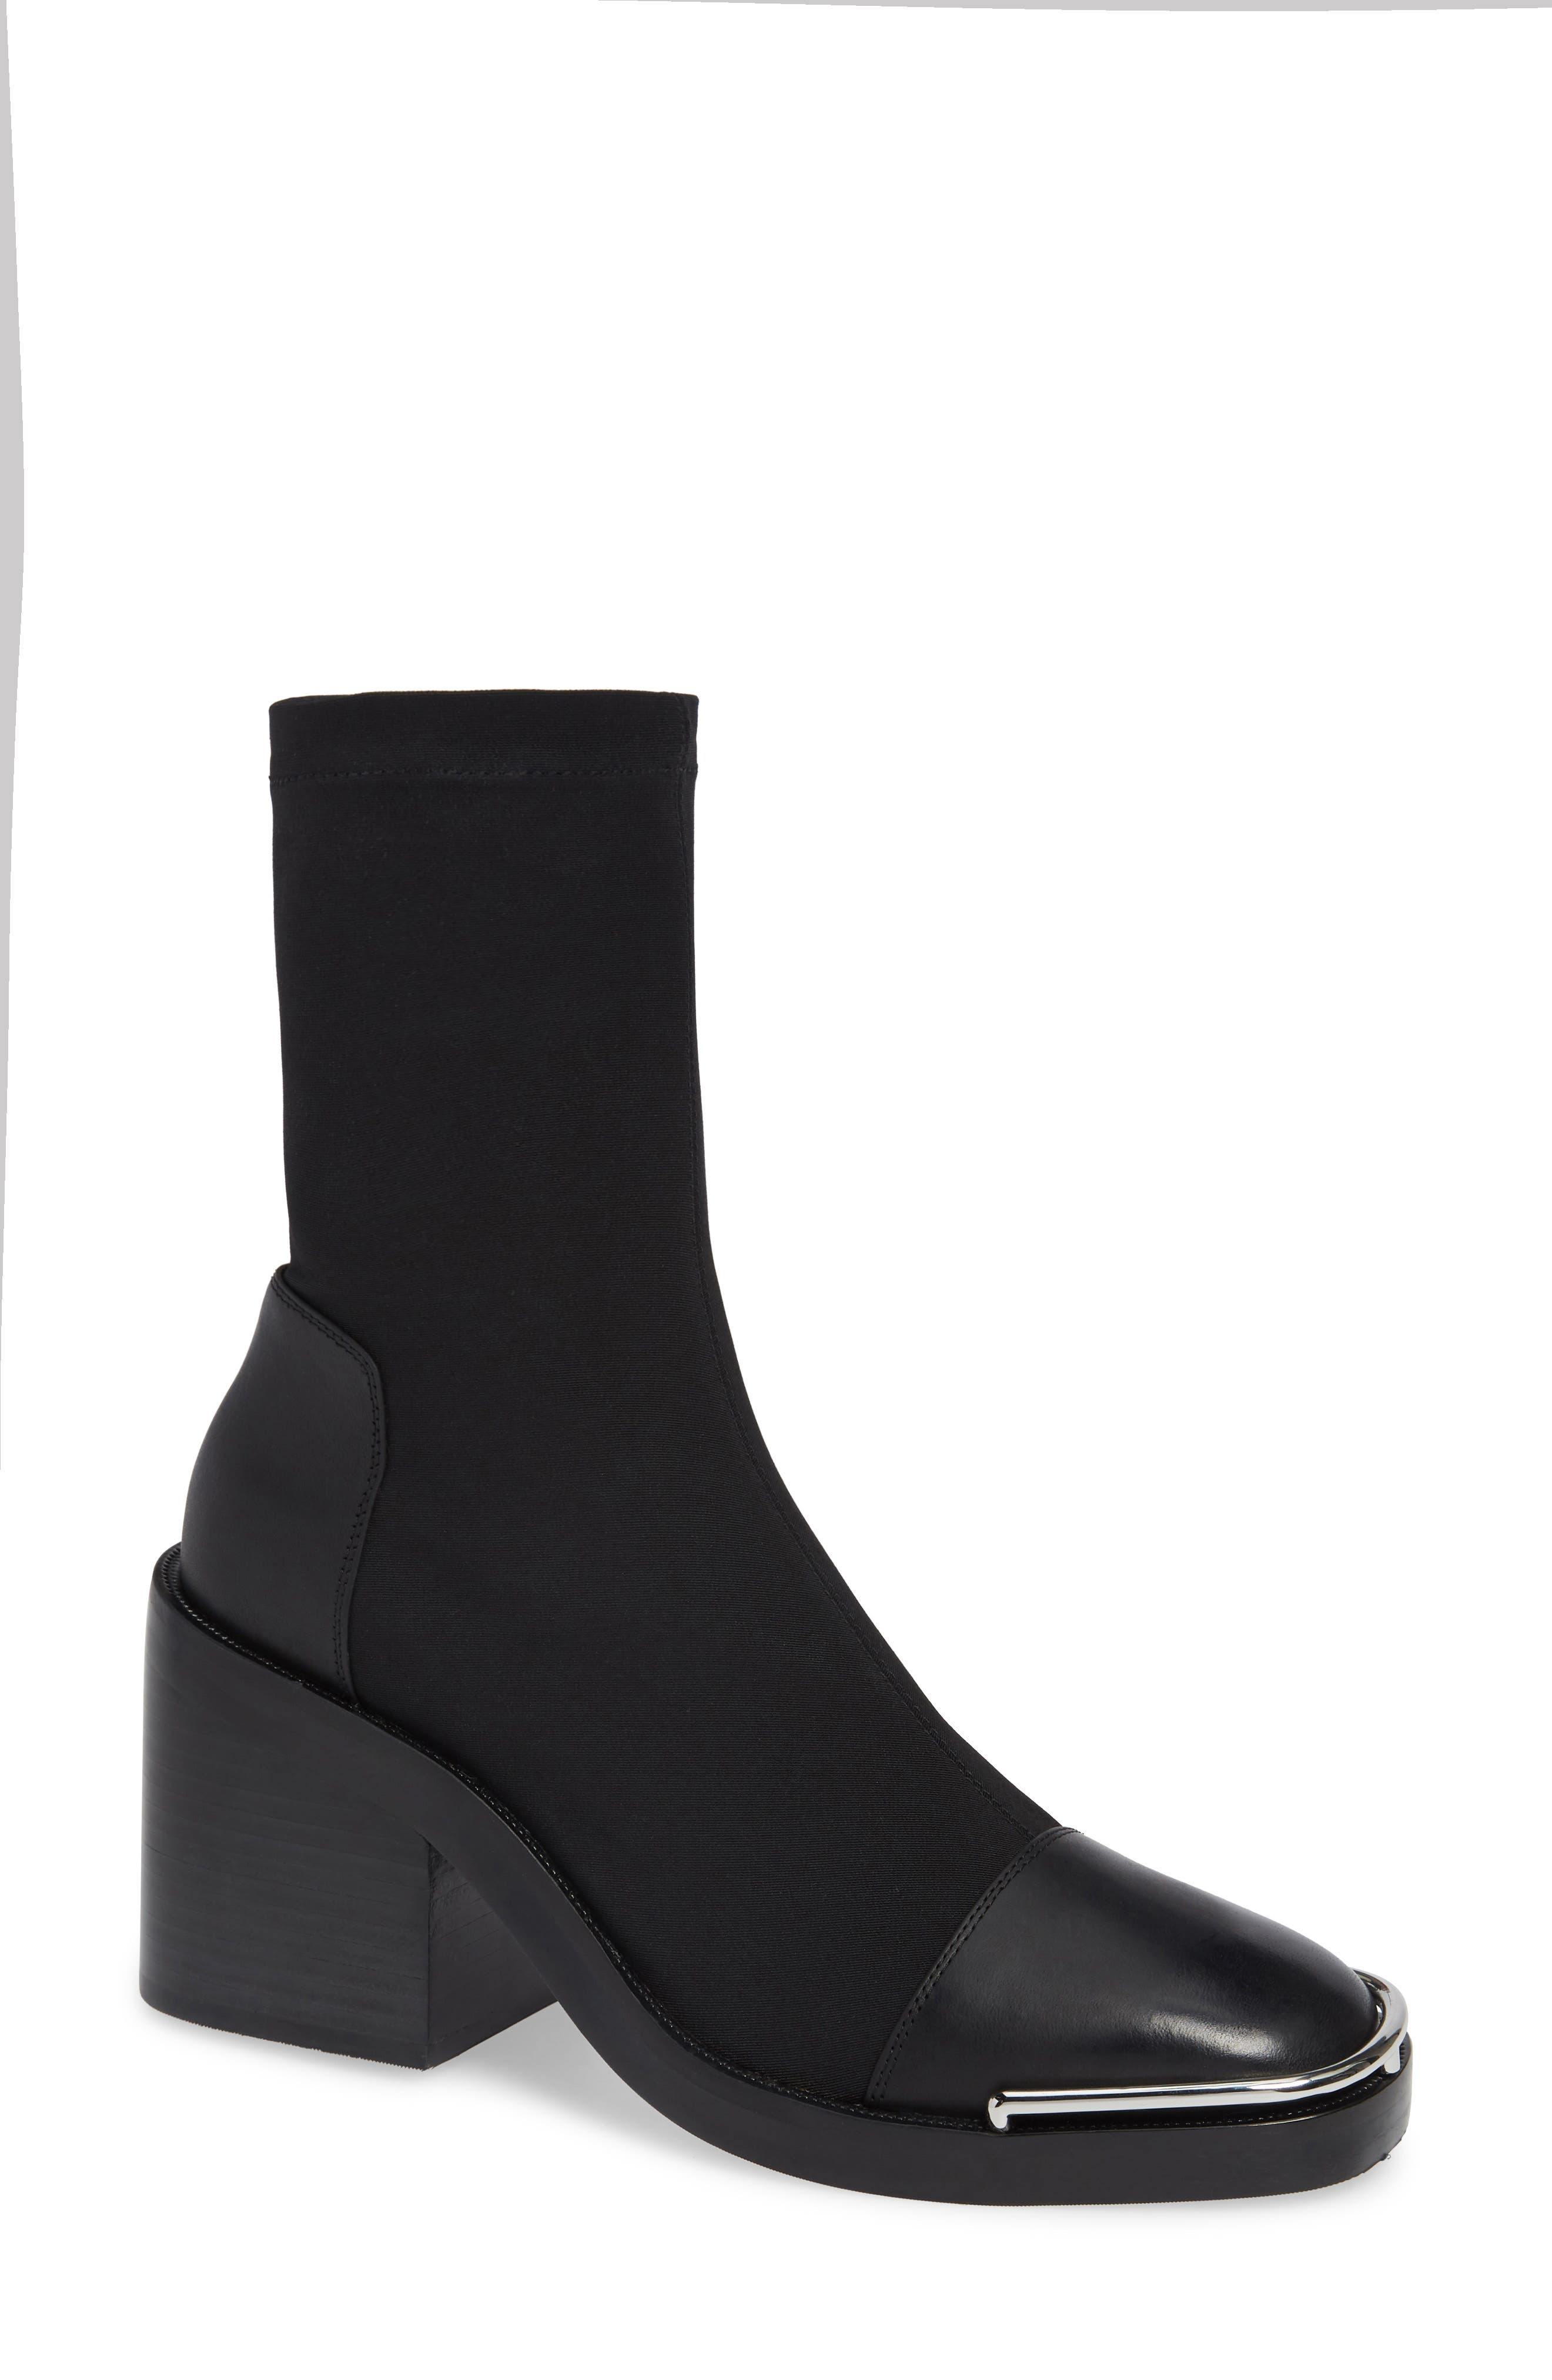 Alexander Wang Hailey Halo Sock Bootie - Black